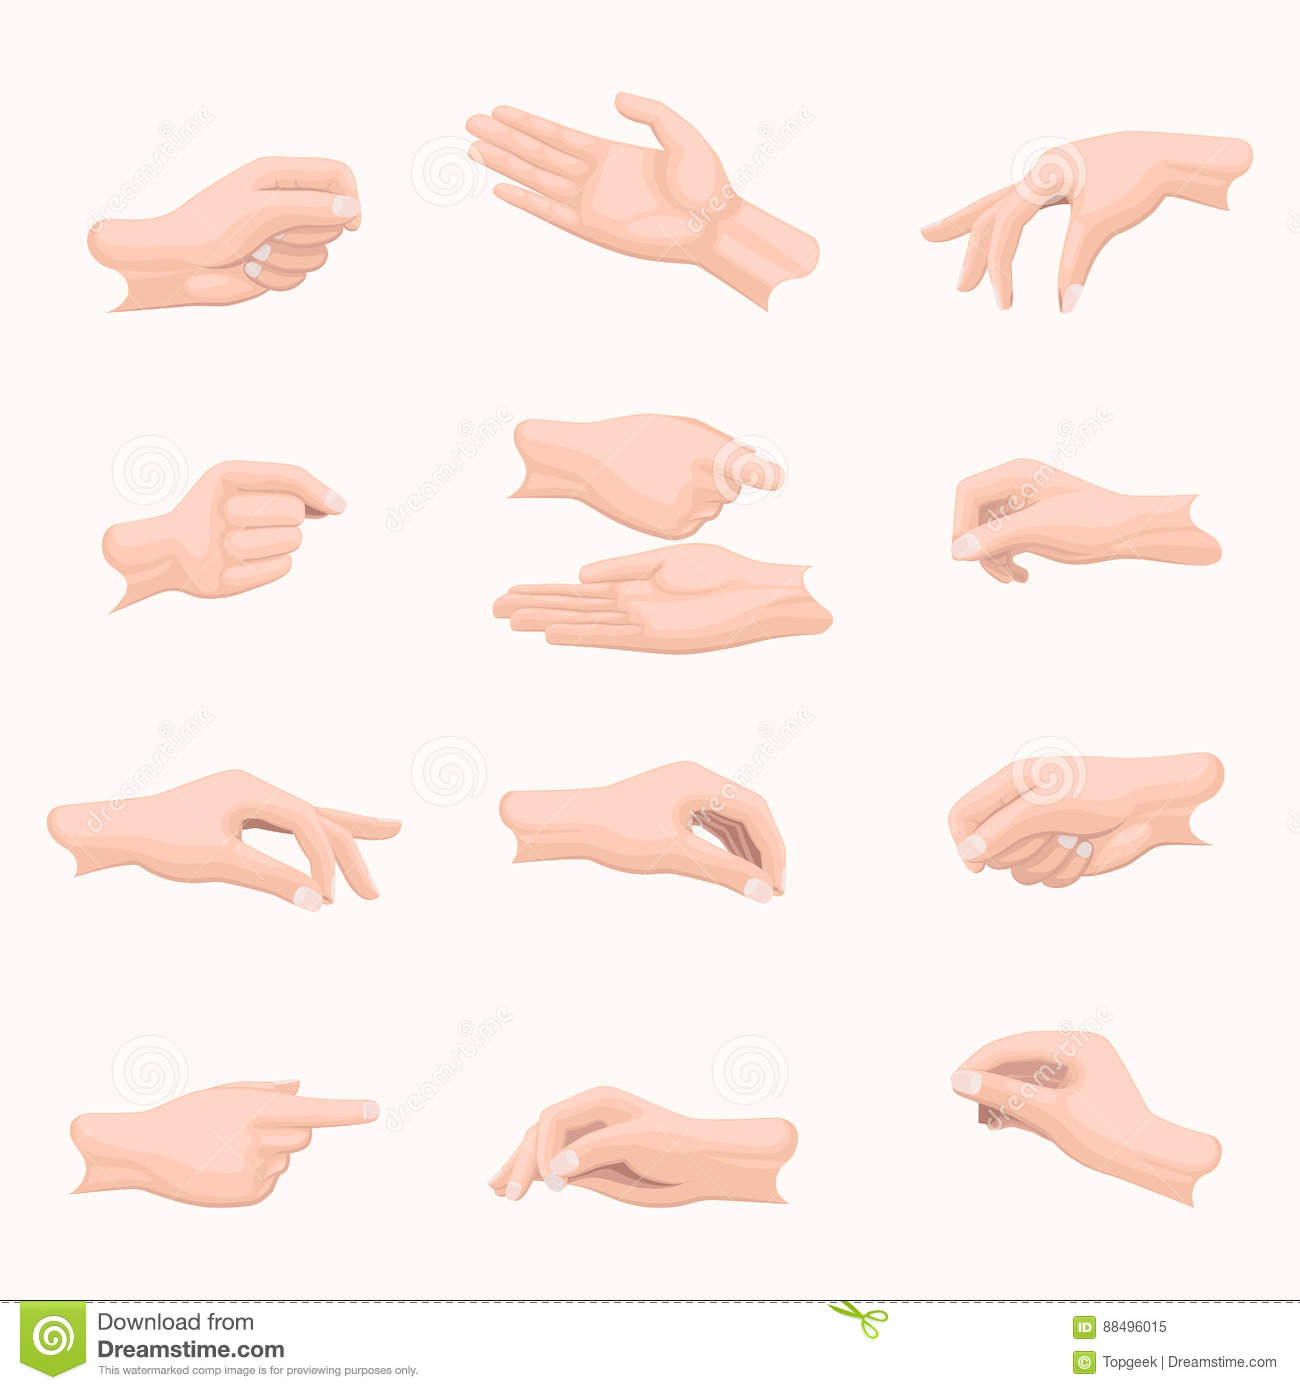 Realistic Hand Set with Fingers Positions on White